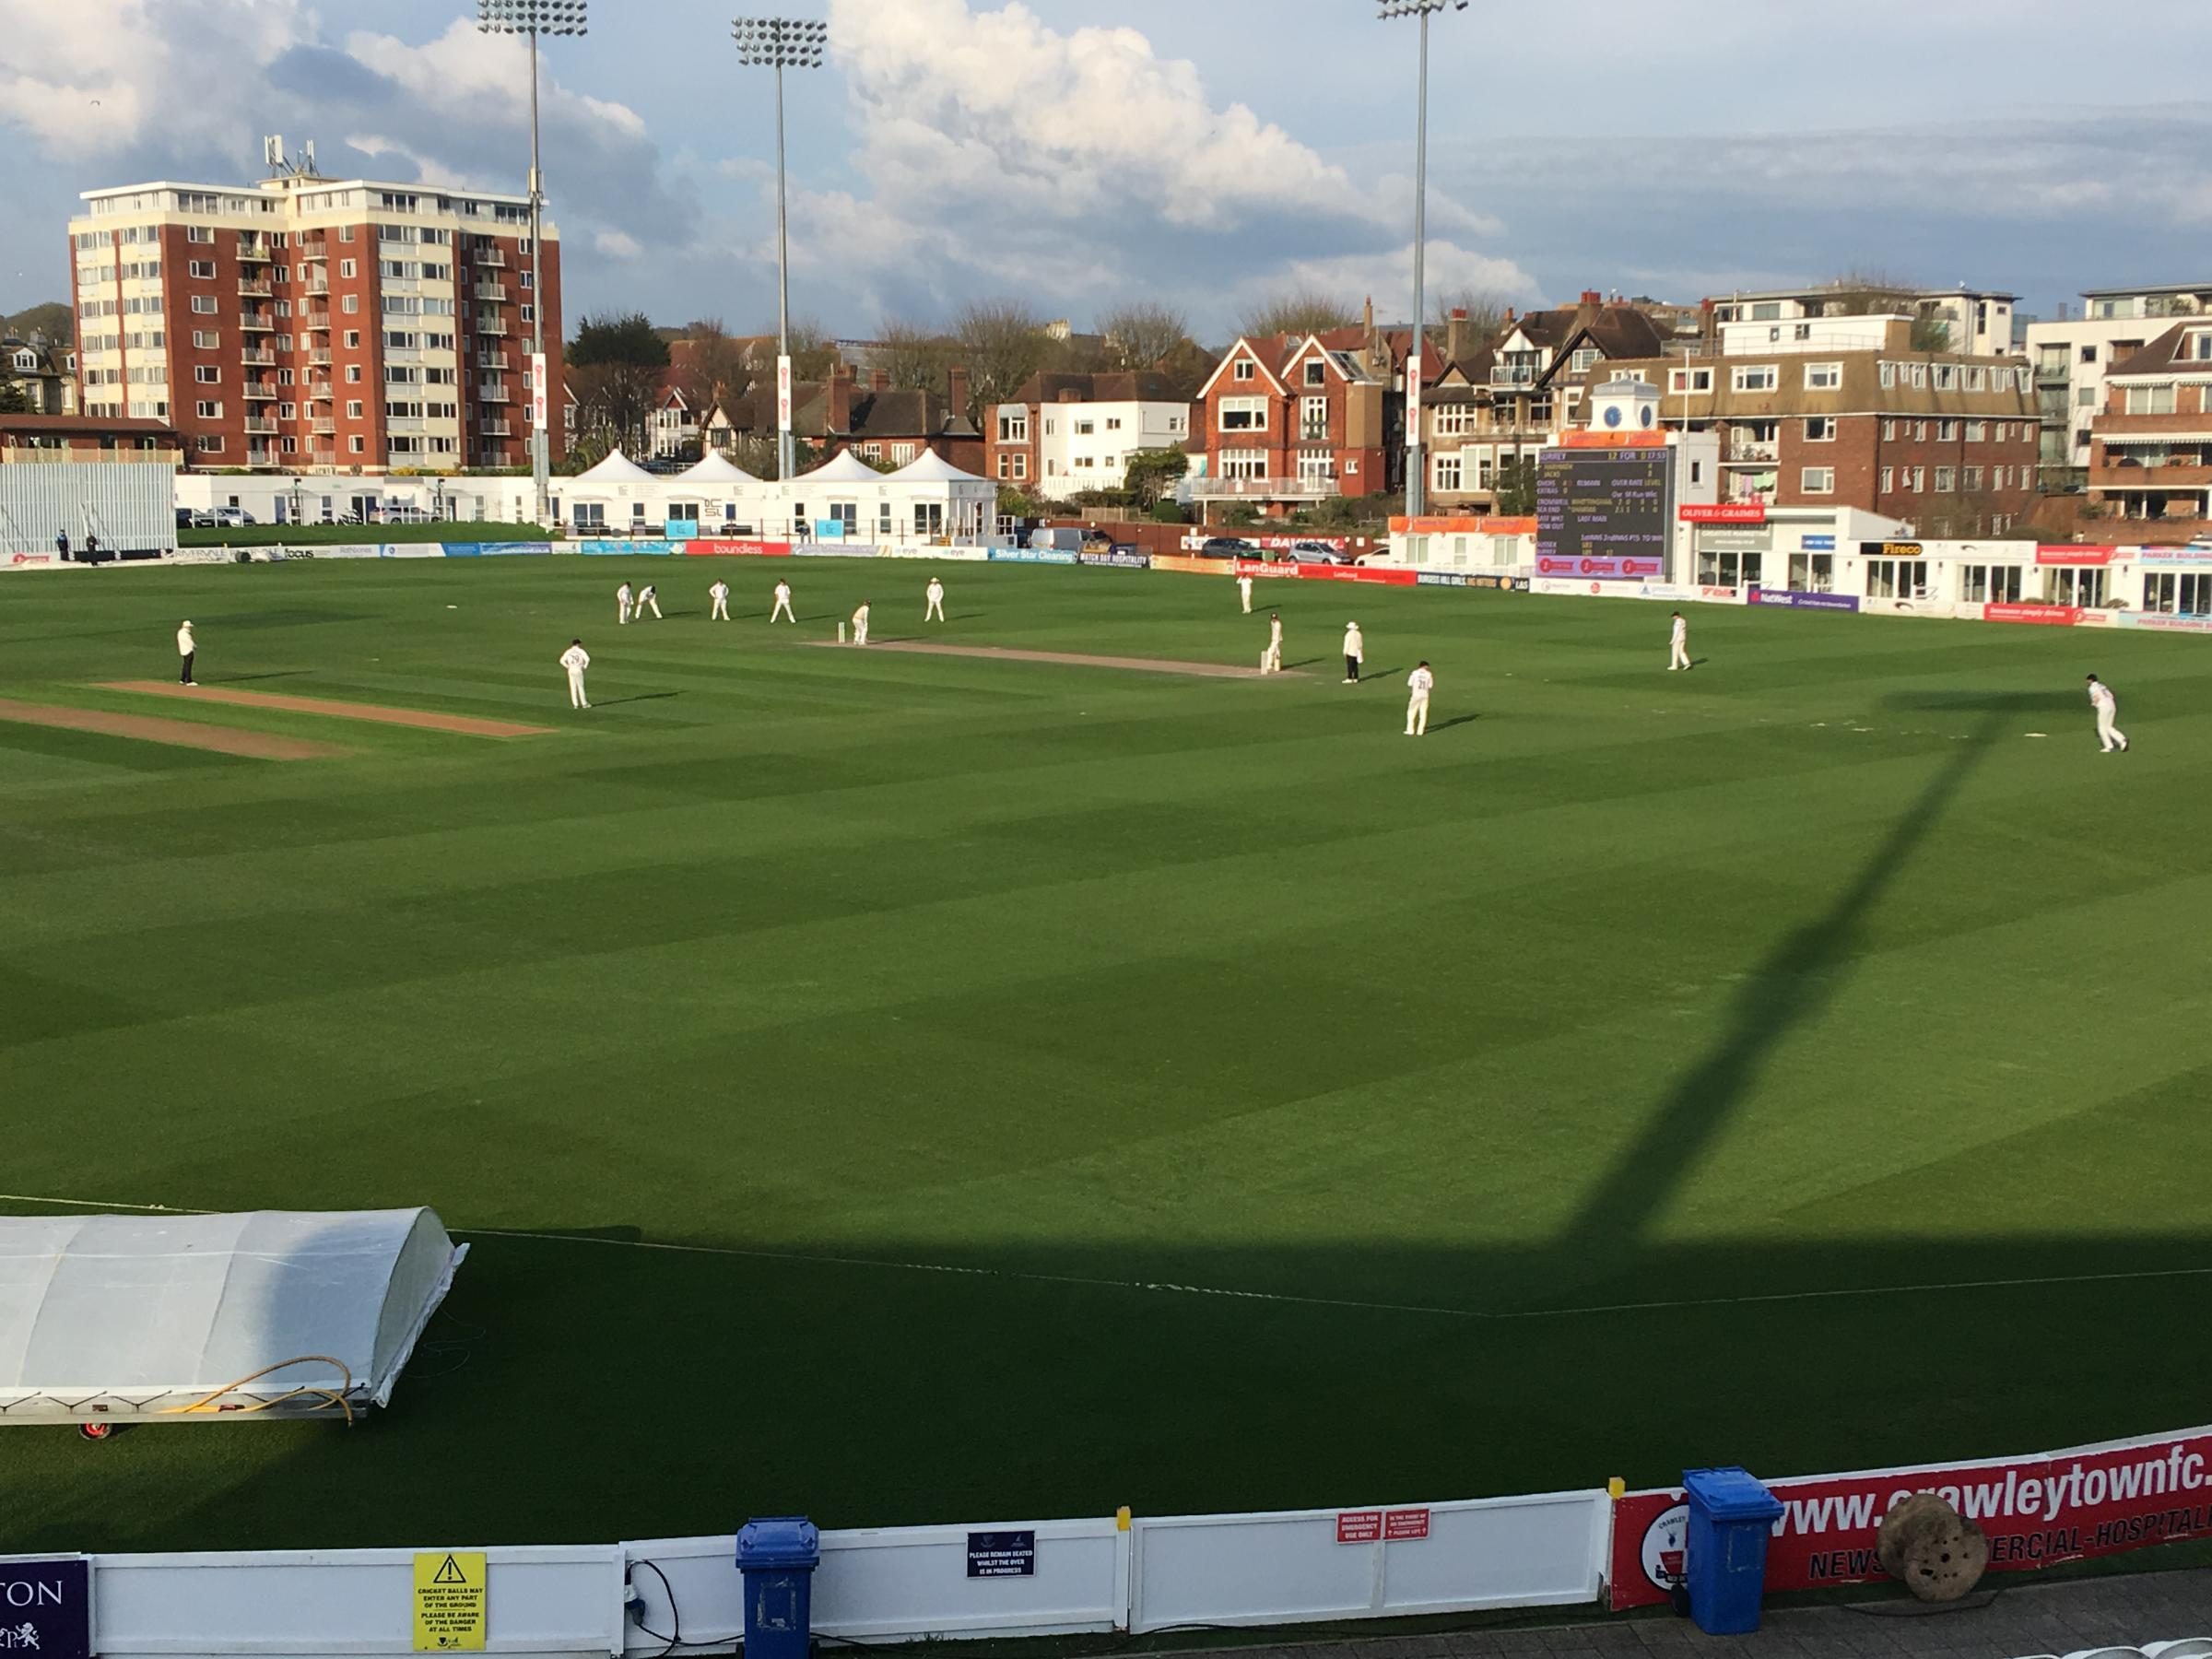 Sussex face a fight after Hove day of drama